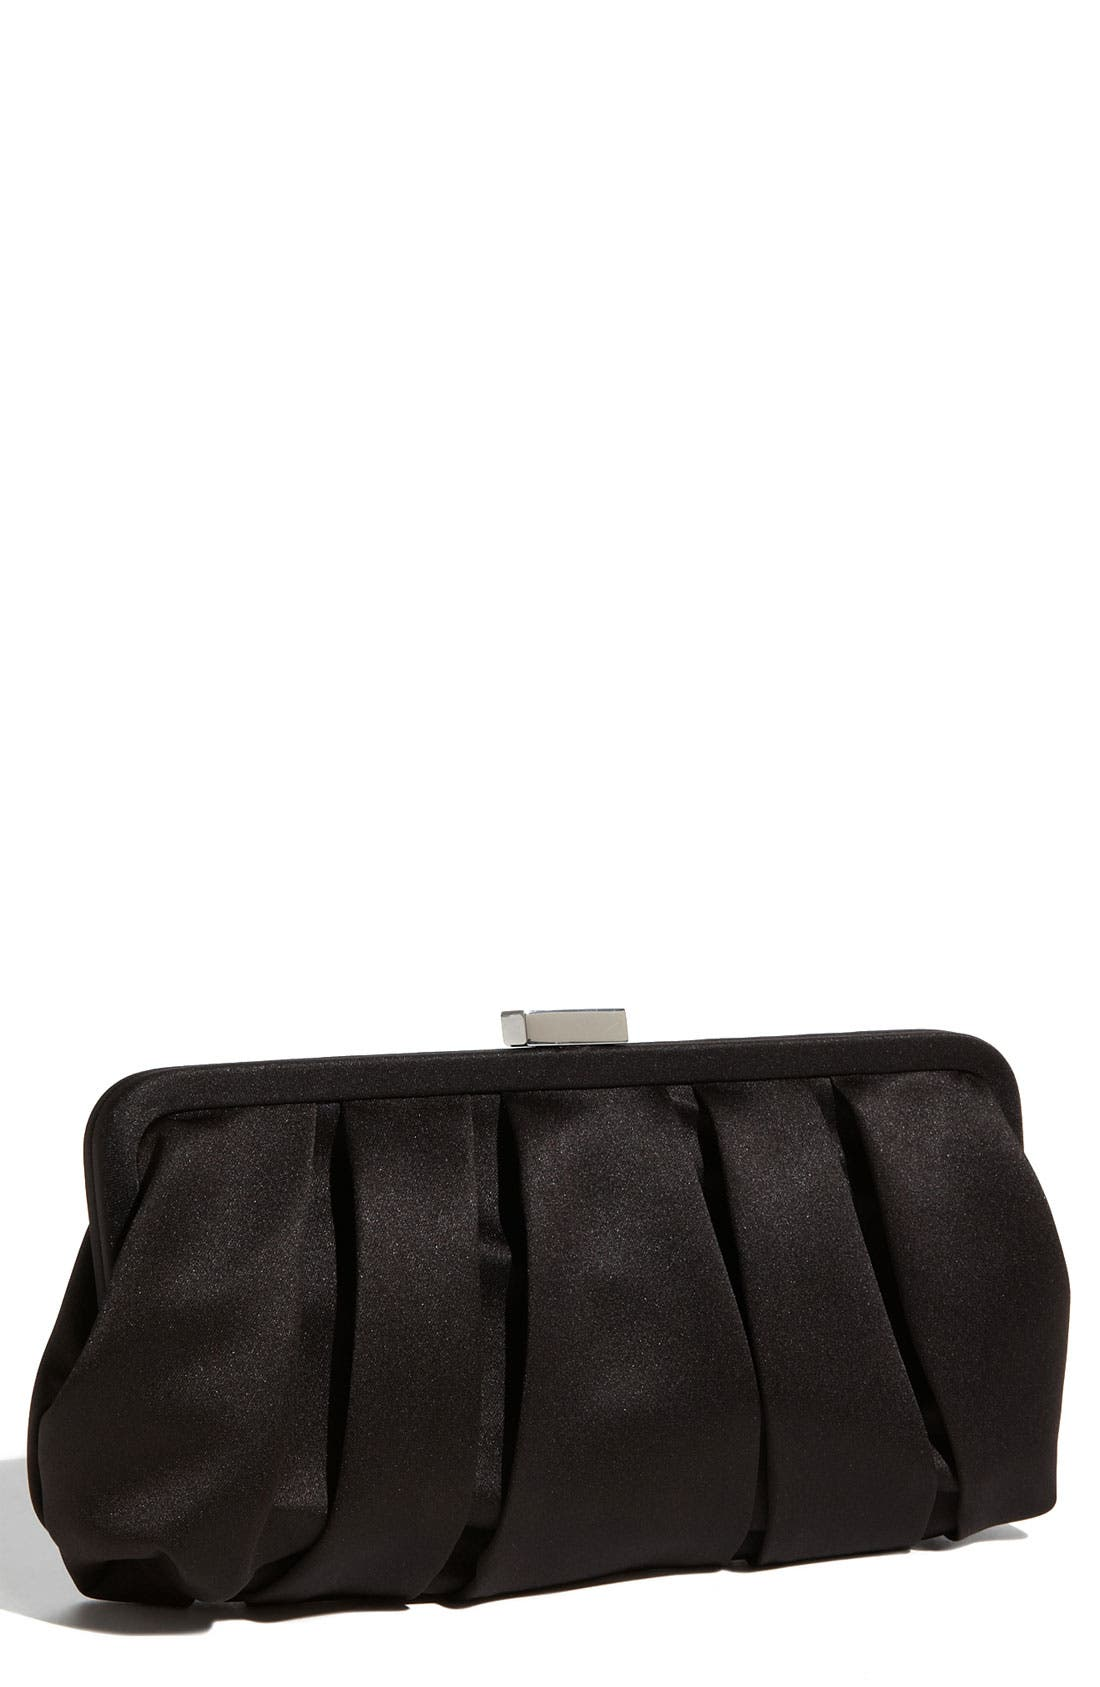 Alternate Image 1 Selected - Nina 'Logan' Satin Clutch